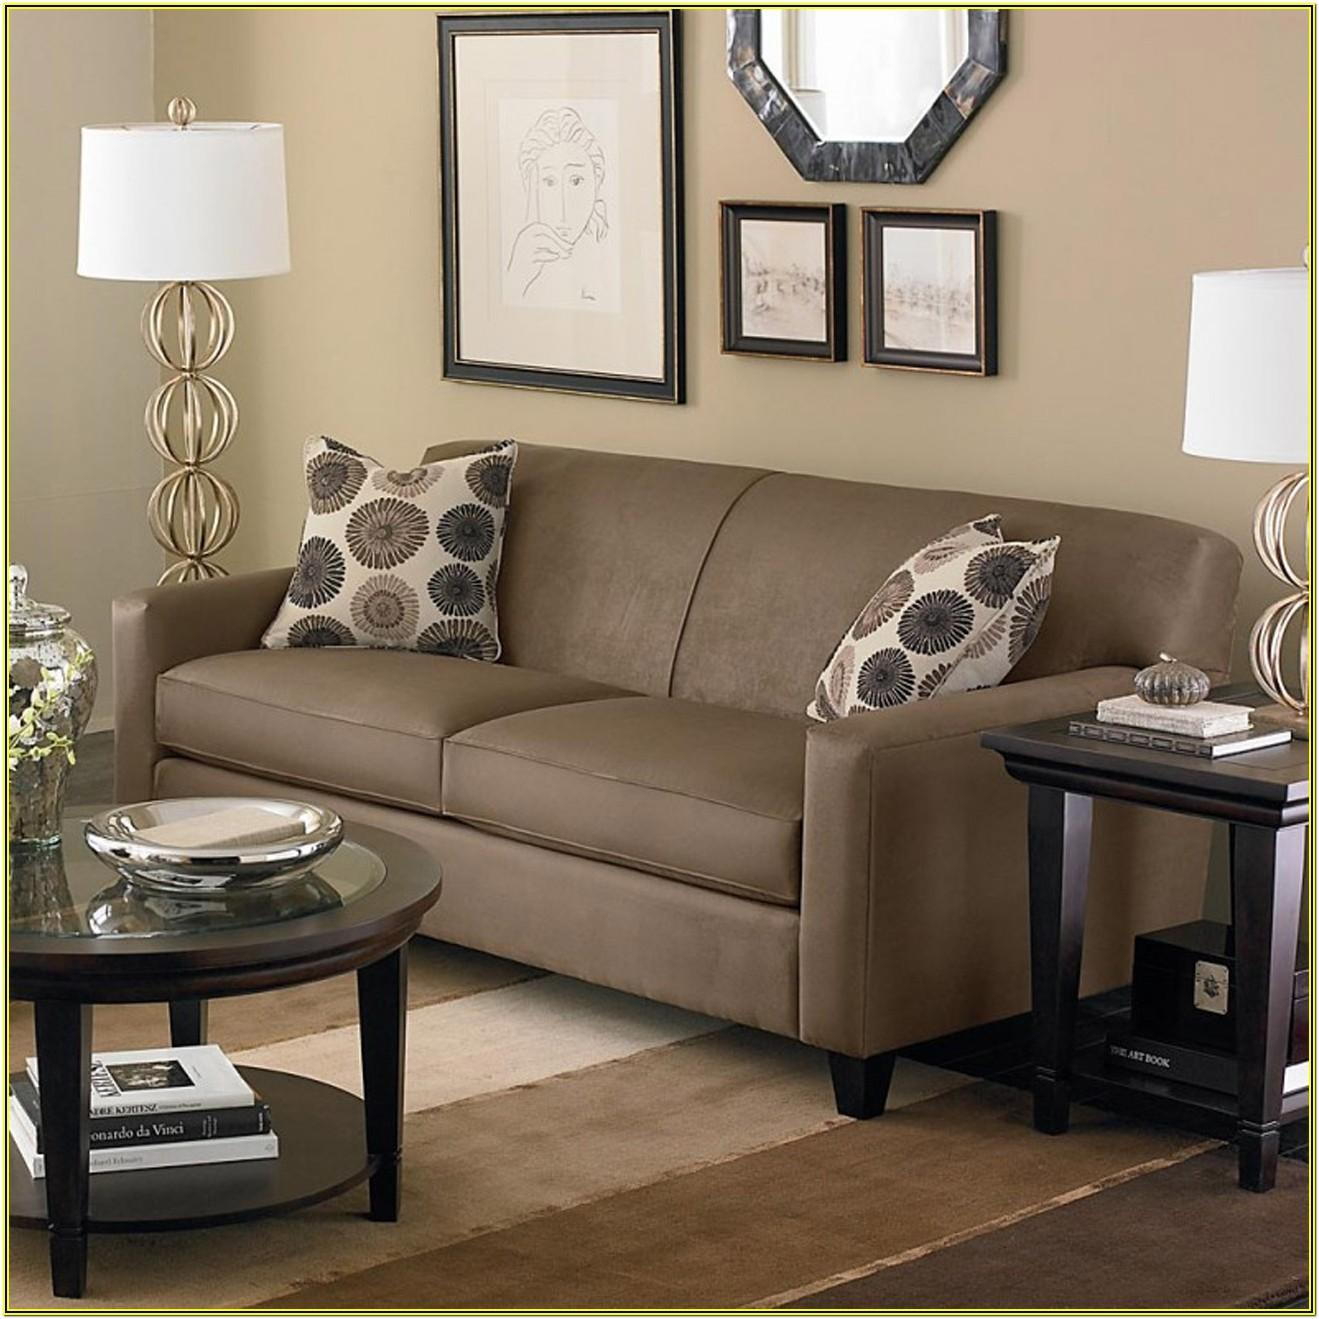 Living Room Ideas With Reclining Sofa